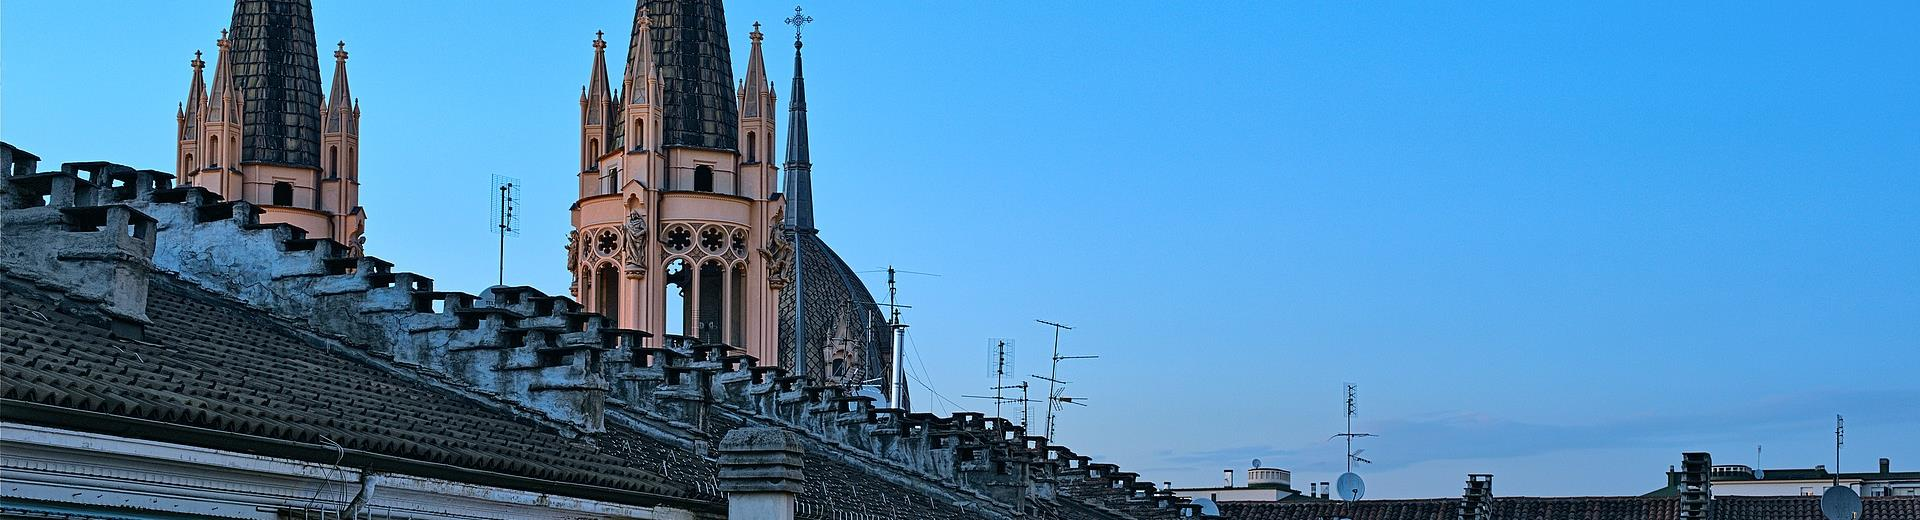 Roofs in Turin